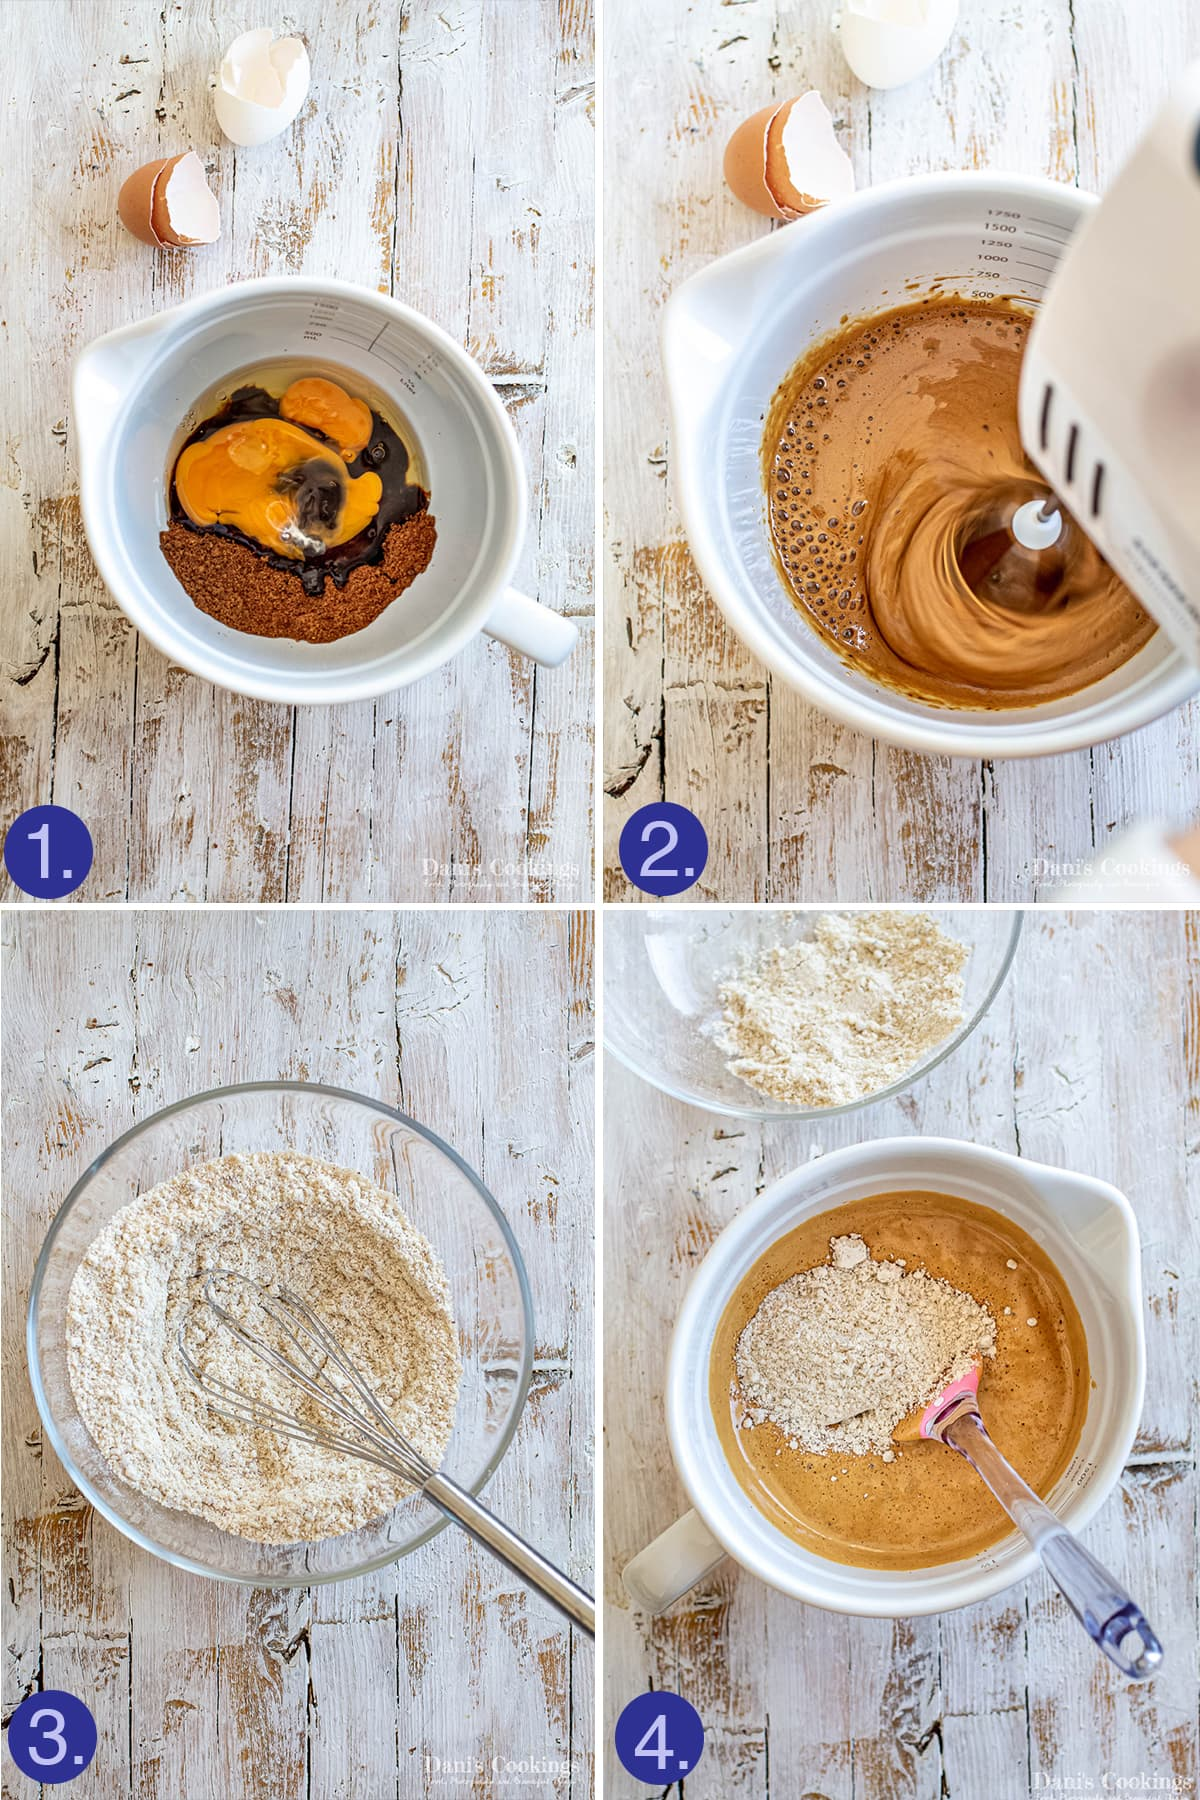 steps to make the madeleines dough